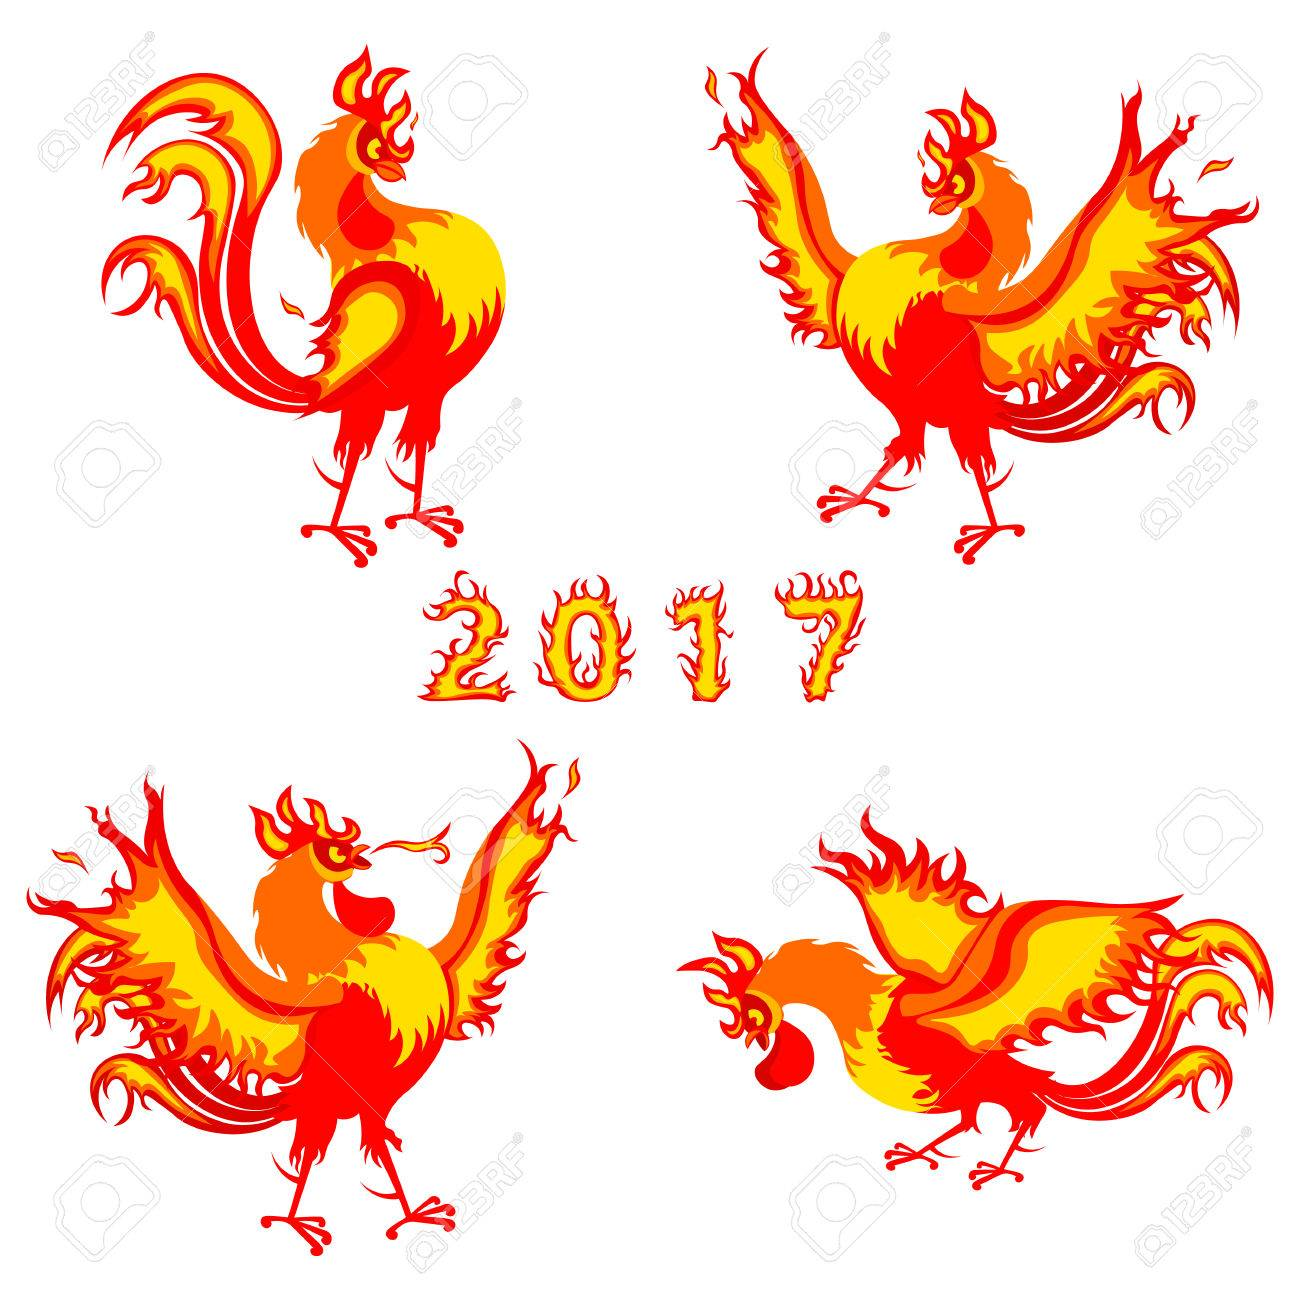 Fire rooster symbol of 2017 on the chinese calendar illustration fire rooster symbol of 2017 on the chinese calendar illustration isolated on a white background biocorpaavc